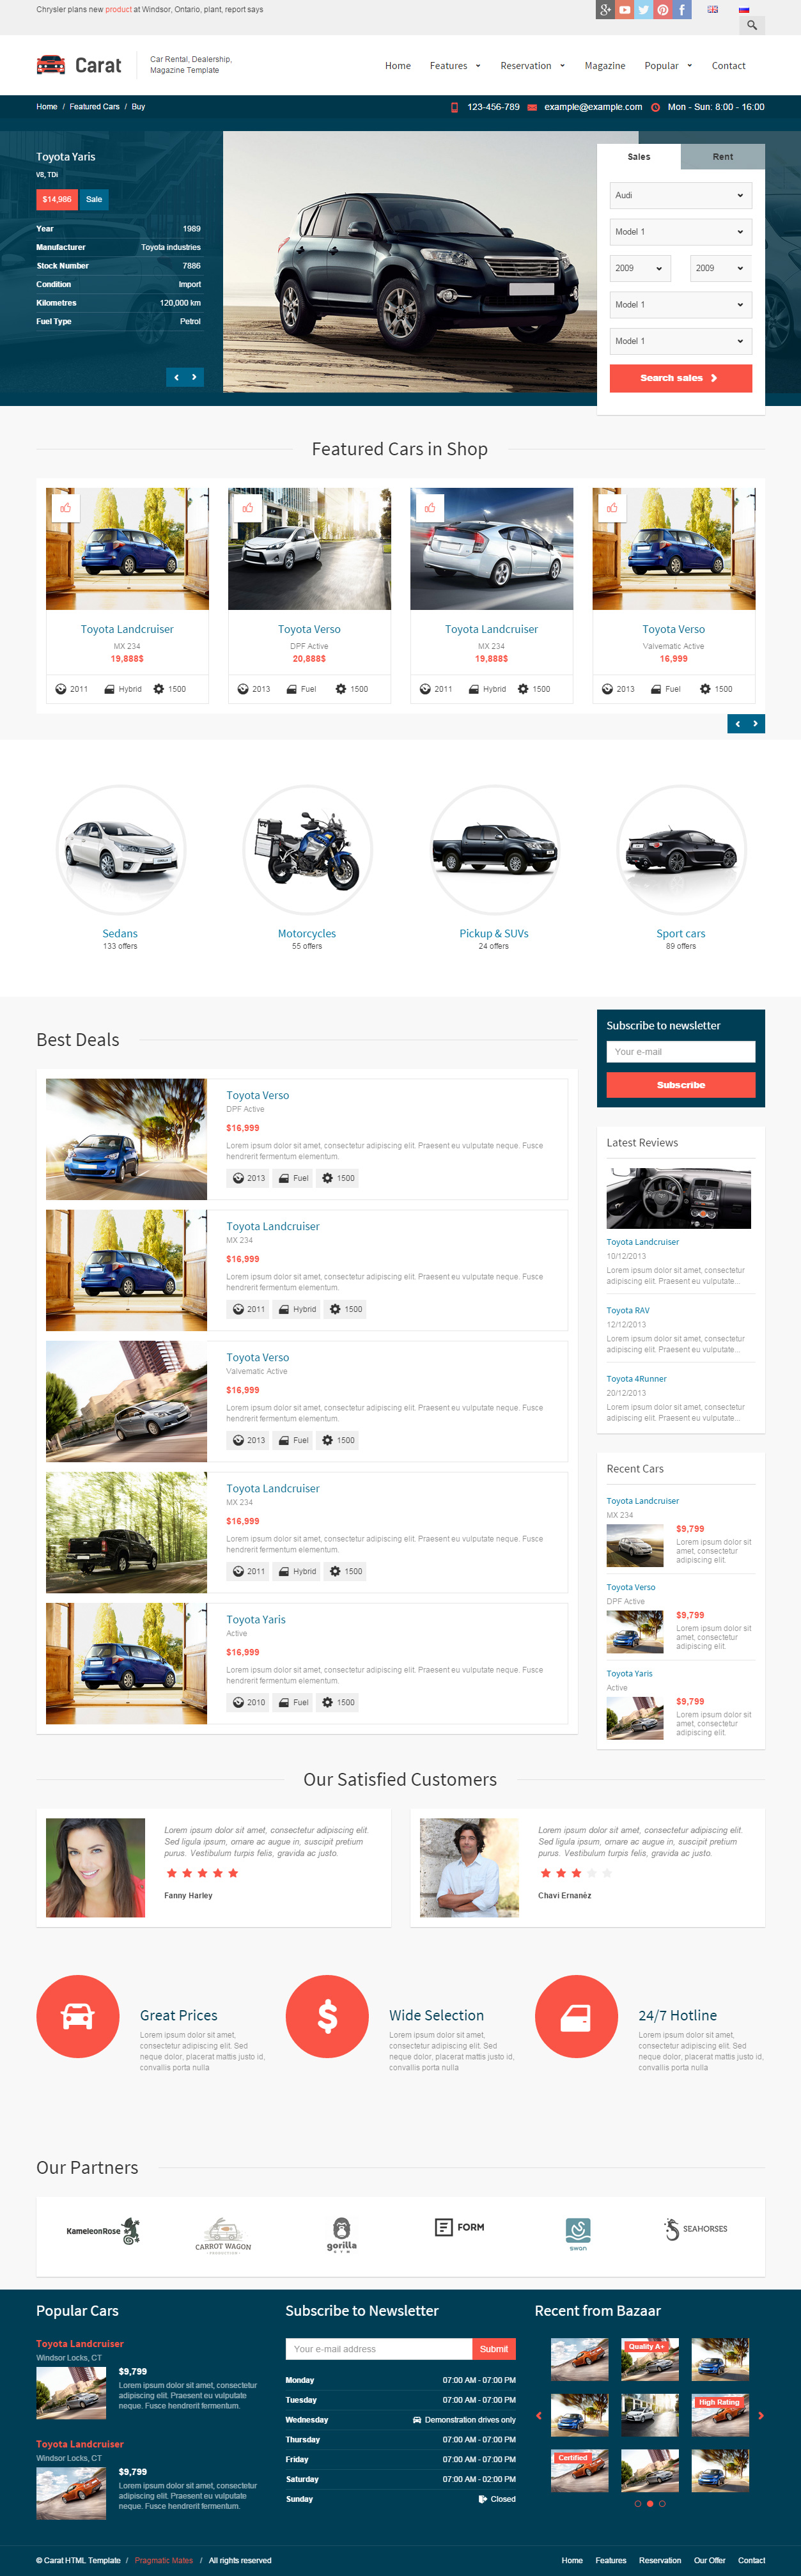 Best responsive html5 car rental templates 2014 1